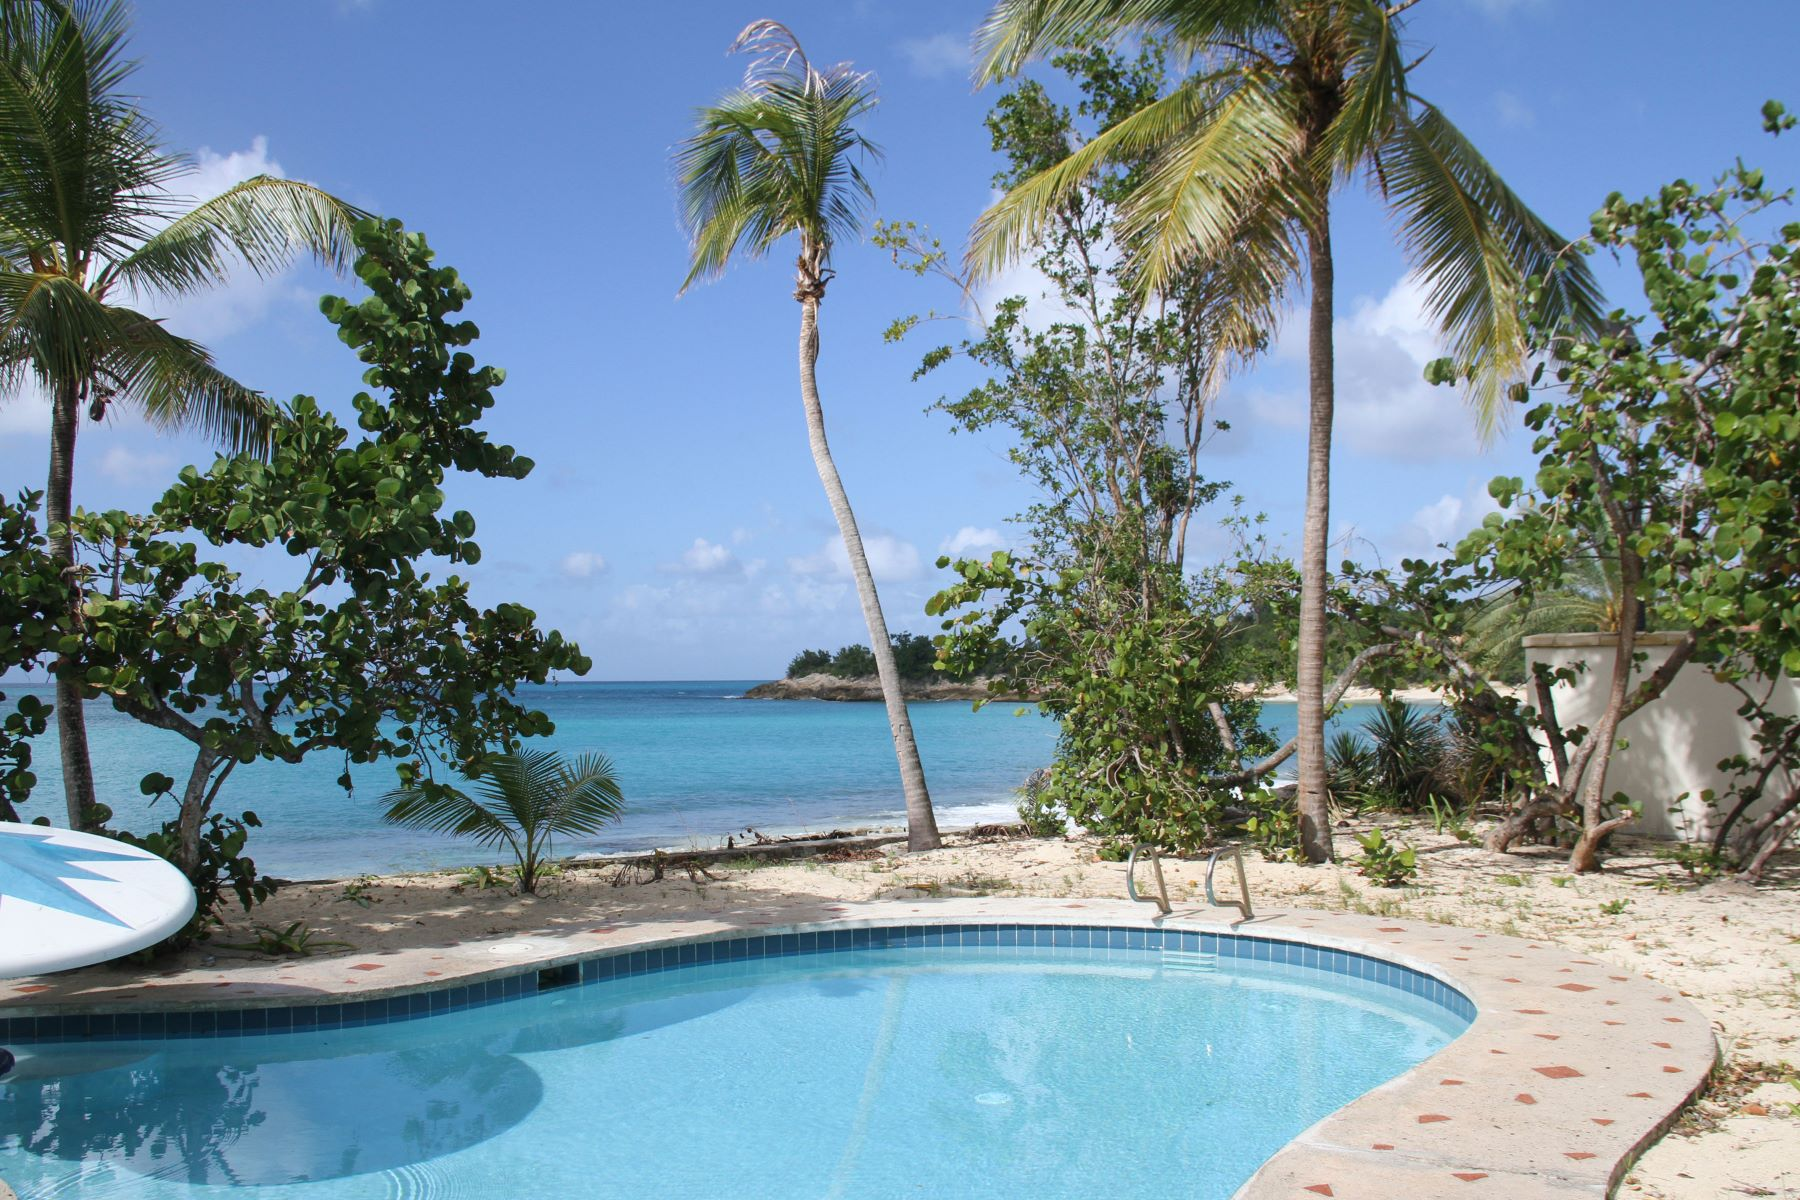 Single Family Home for Sale at Plum Bay Retreat Plum Bay Retreat Terres Basses, Cities In Saint Martin 97150 St. Martin